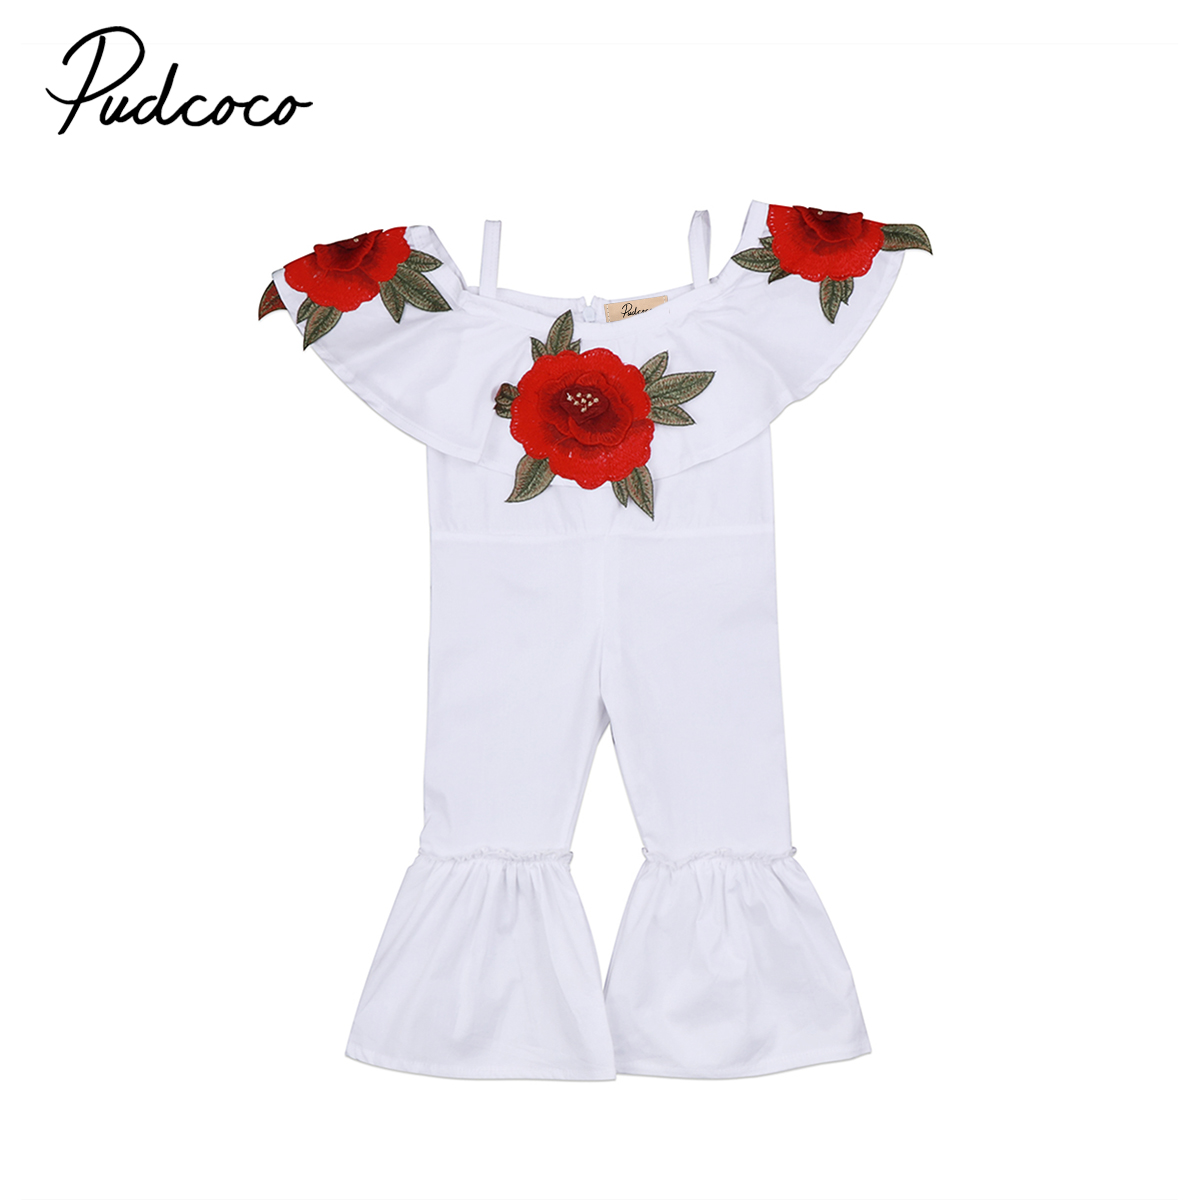 Kids Infant Baby Girls Flower Off-shoulder Strap Clothing Romper Floral Cute Playsuit Clothes Outfits Sunsuit Fille Clothing